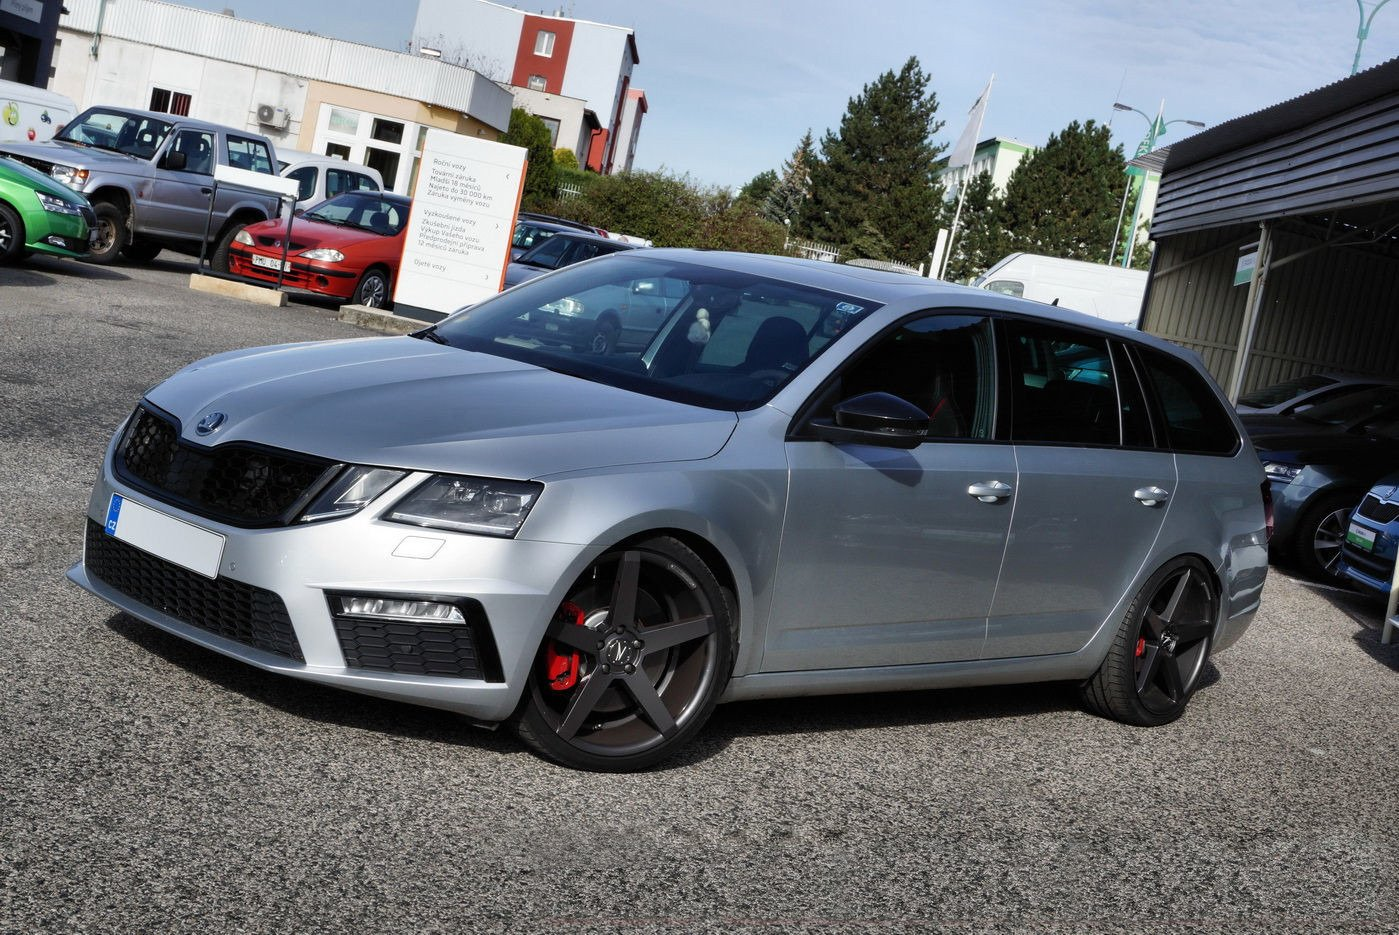 Grill Skoda Octavia Iii Rs Facelift Our Offer Skoda Octavia Rs Mk3 Fl 2016 2019 Maxton Design